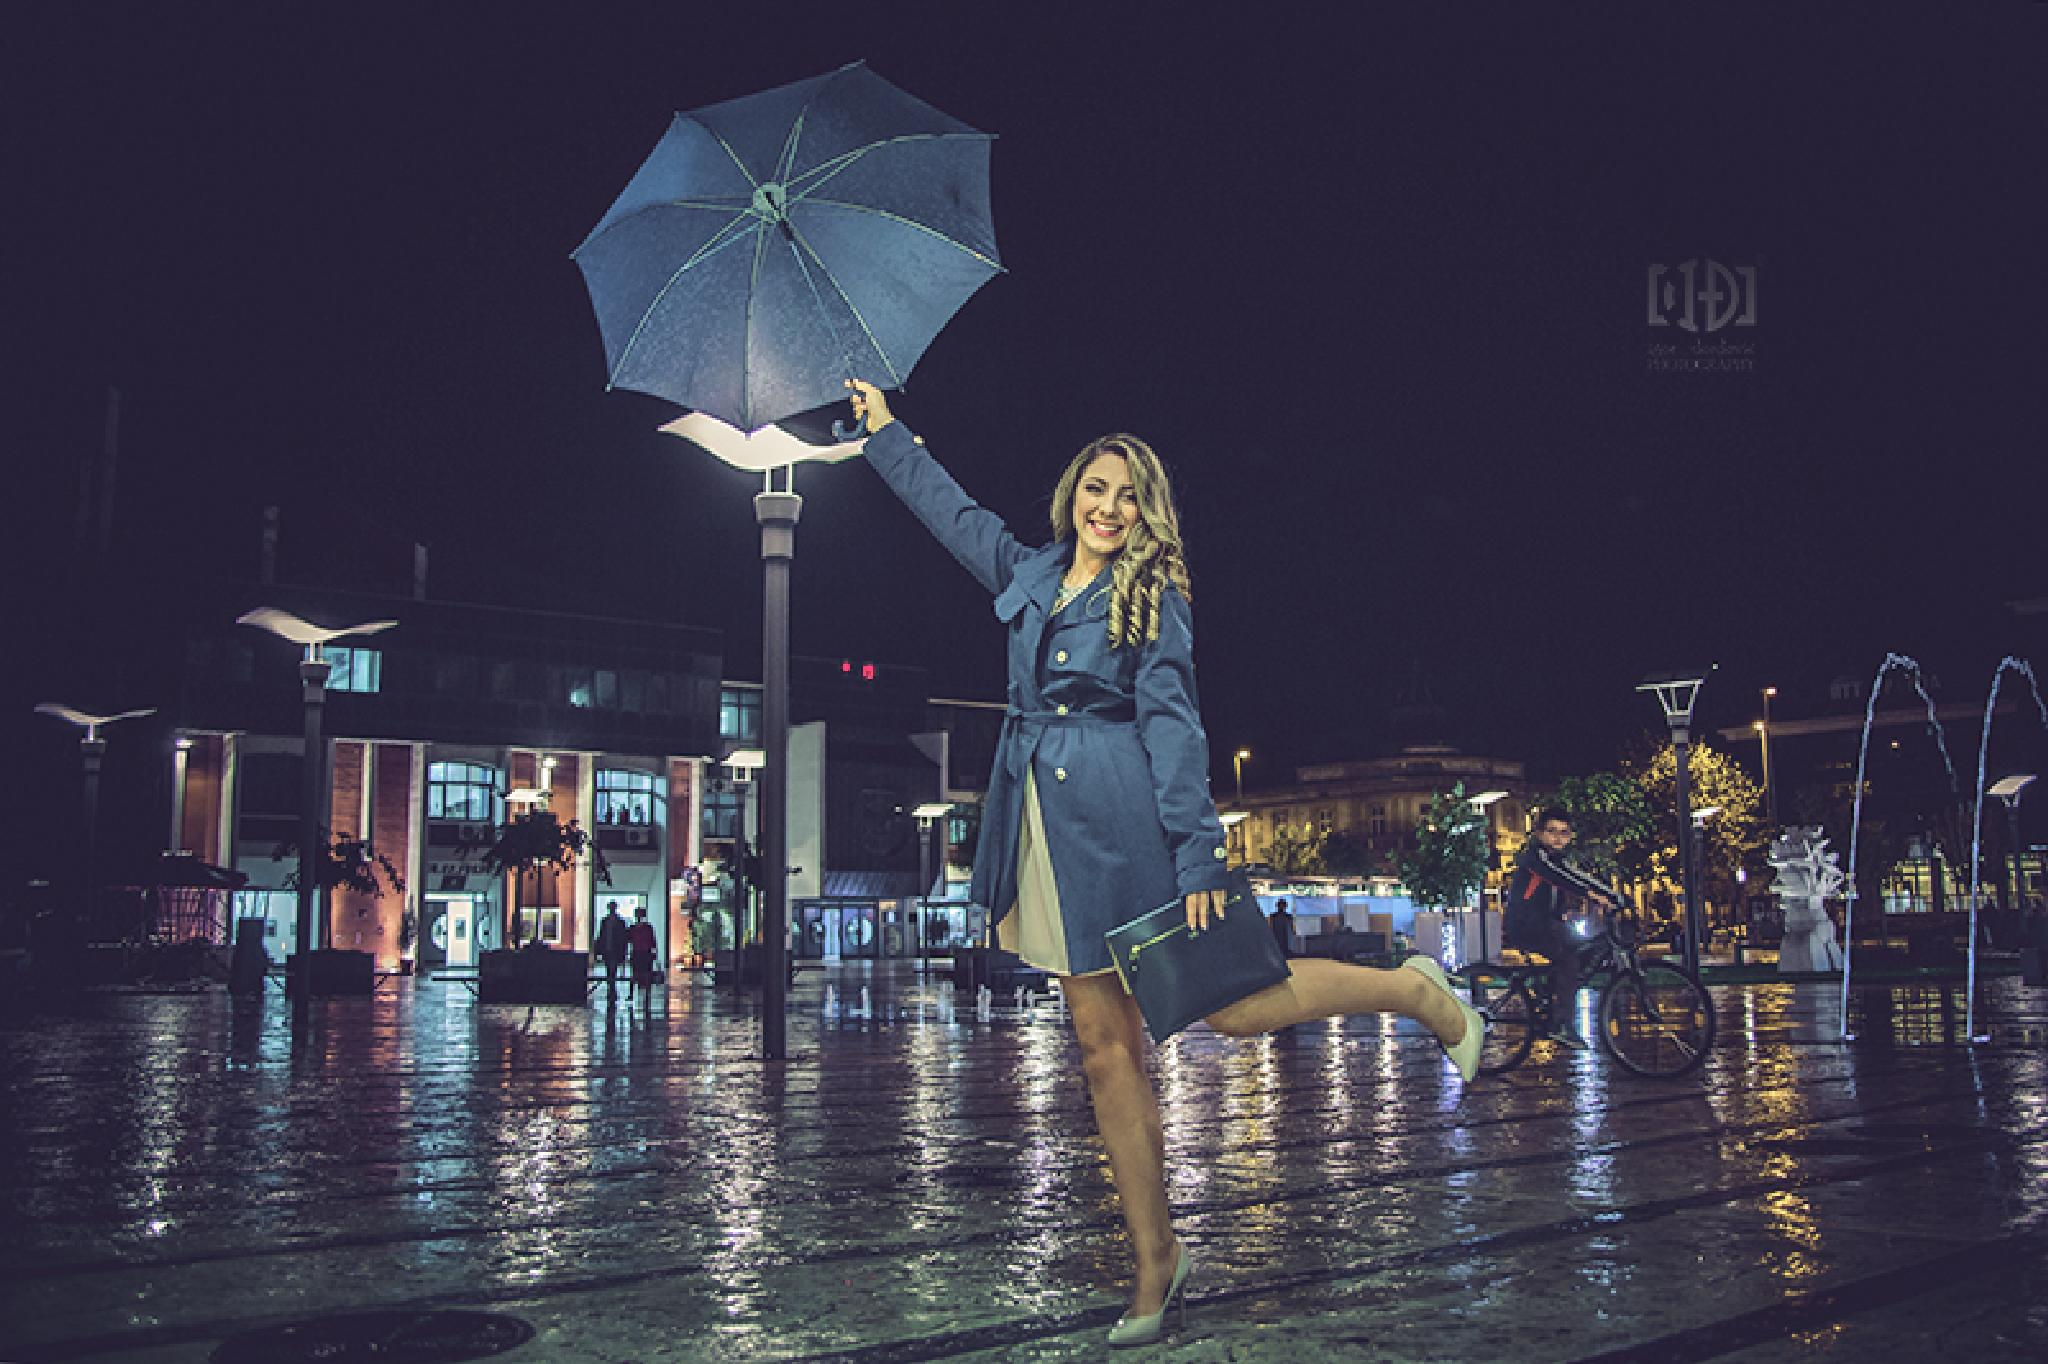 Singing in the rain by Igor Djordjevic